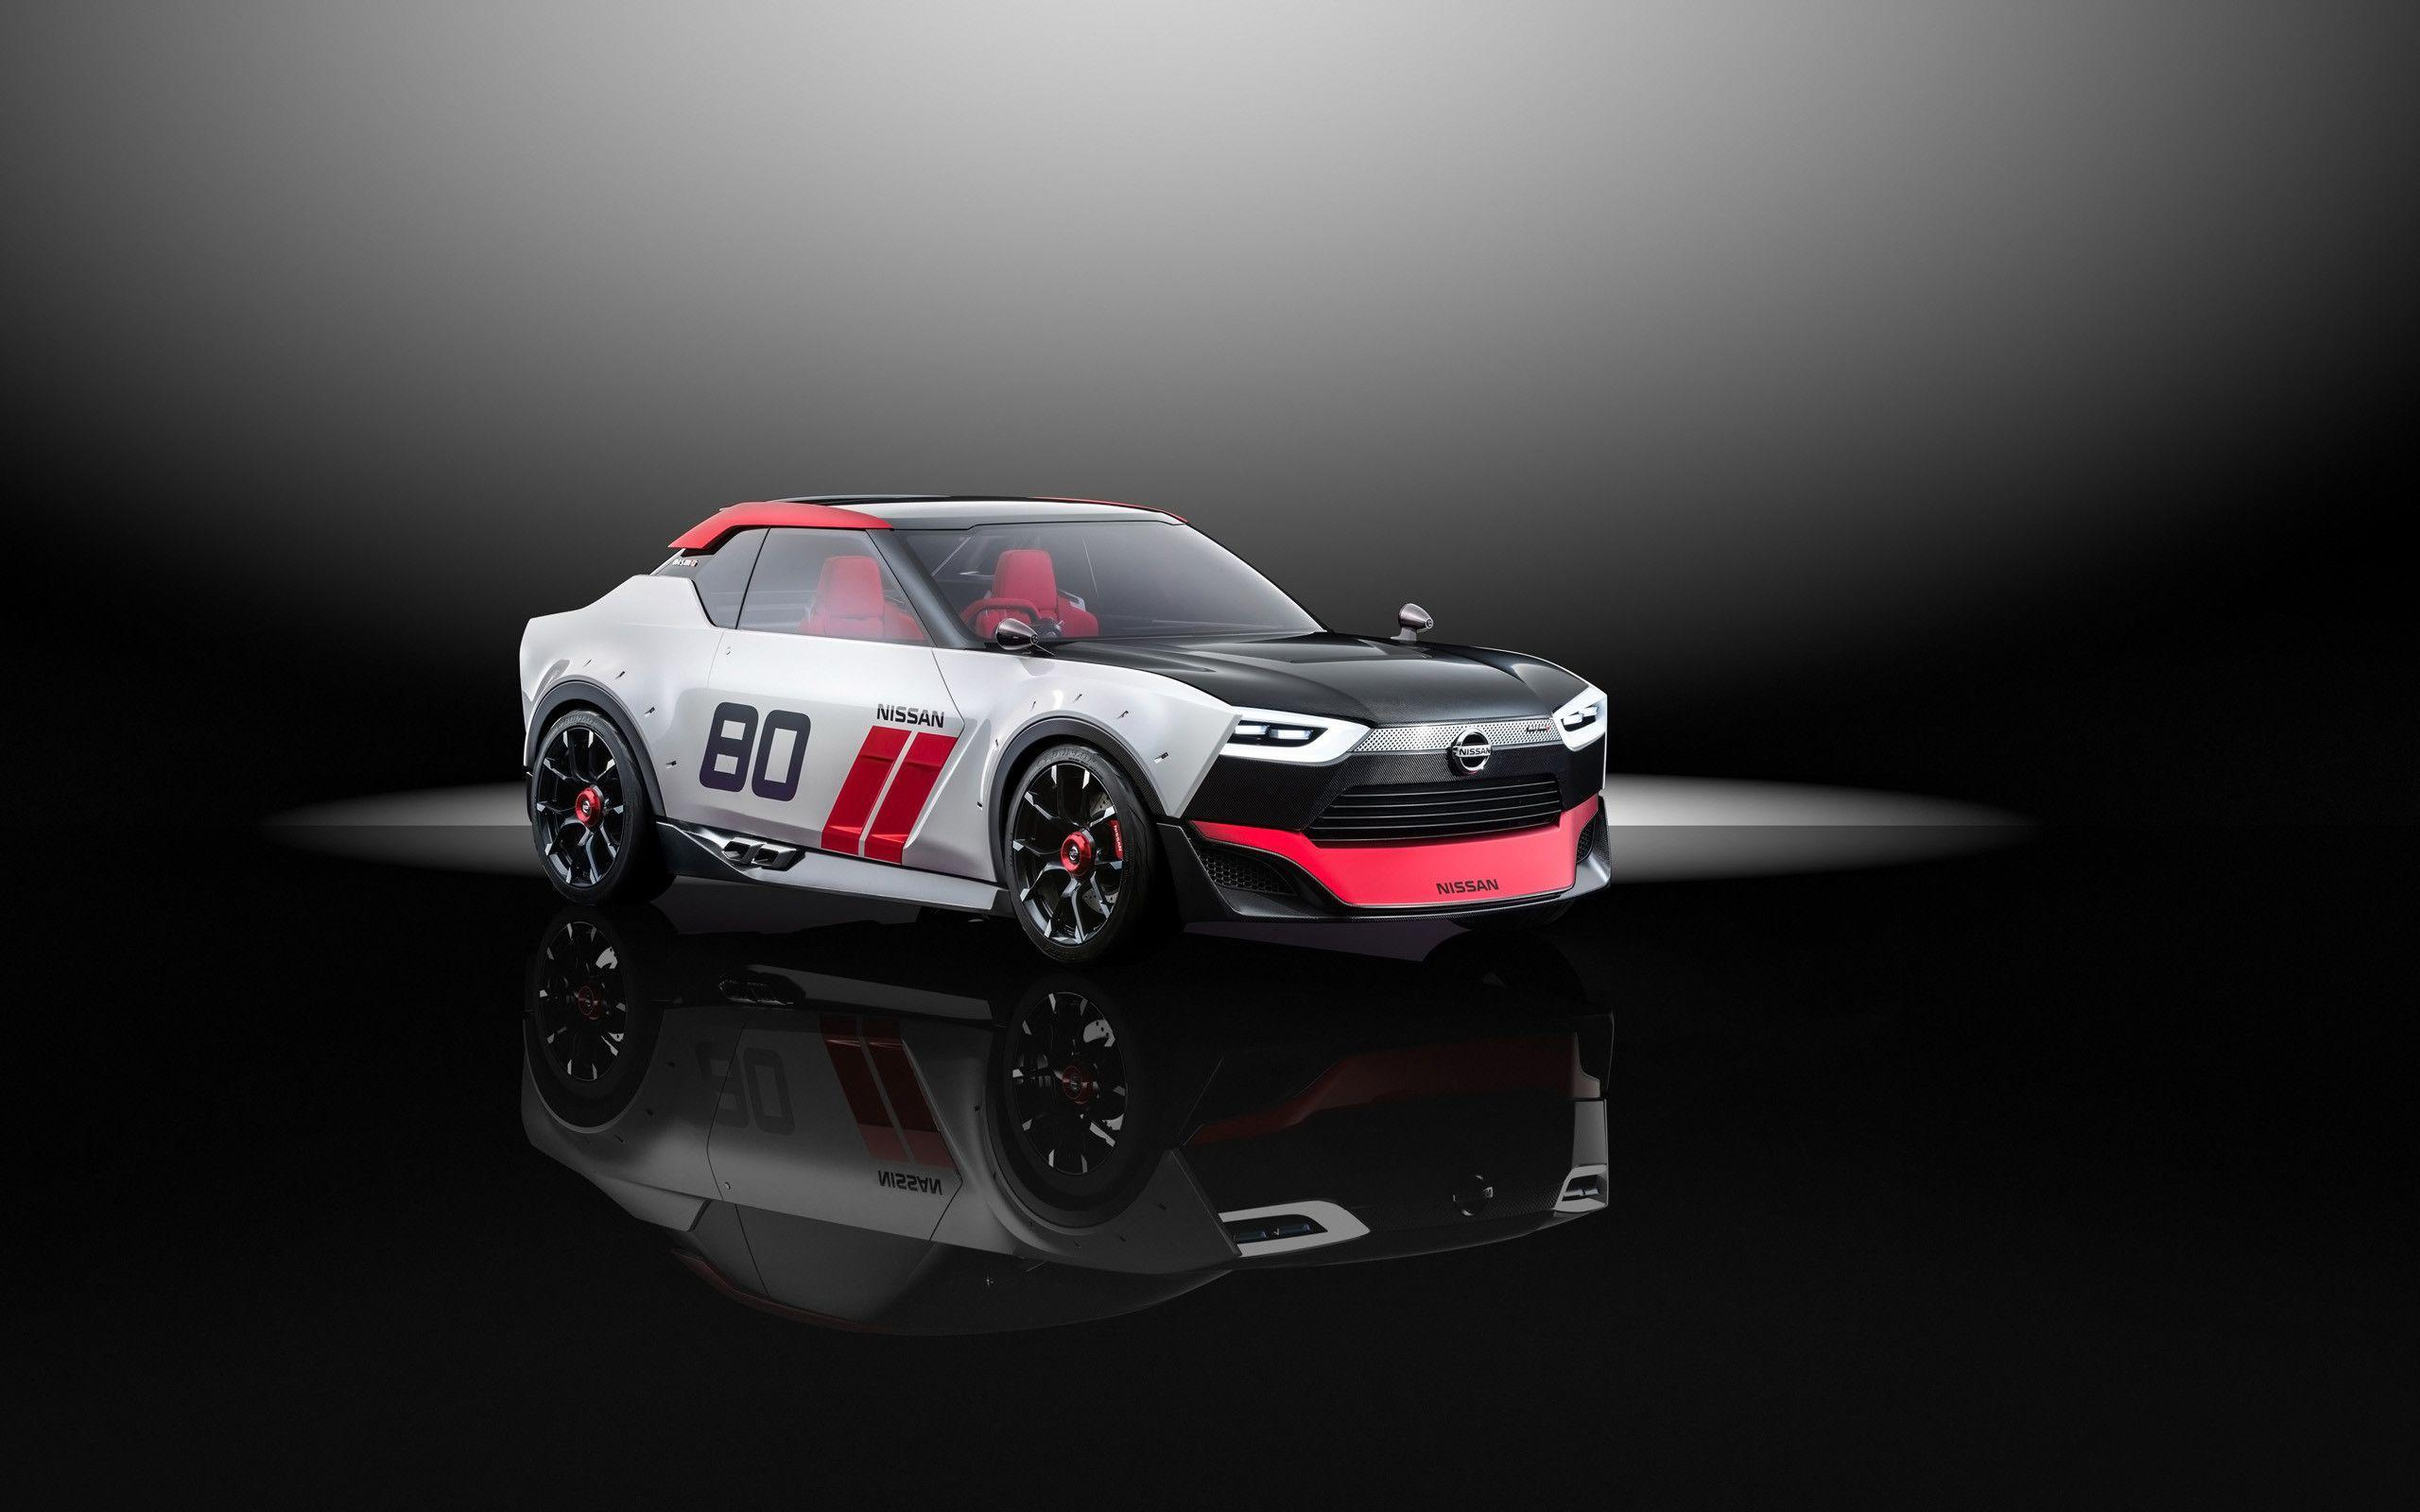 2013 Nissan IDx NISMO 3 Wallpapers